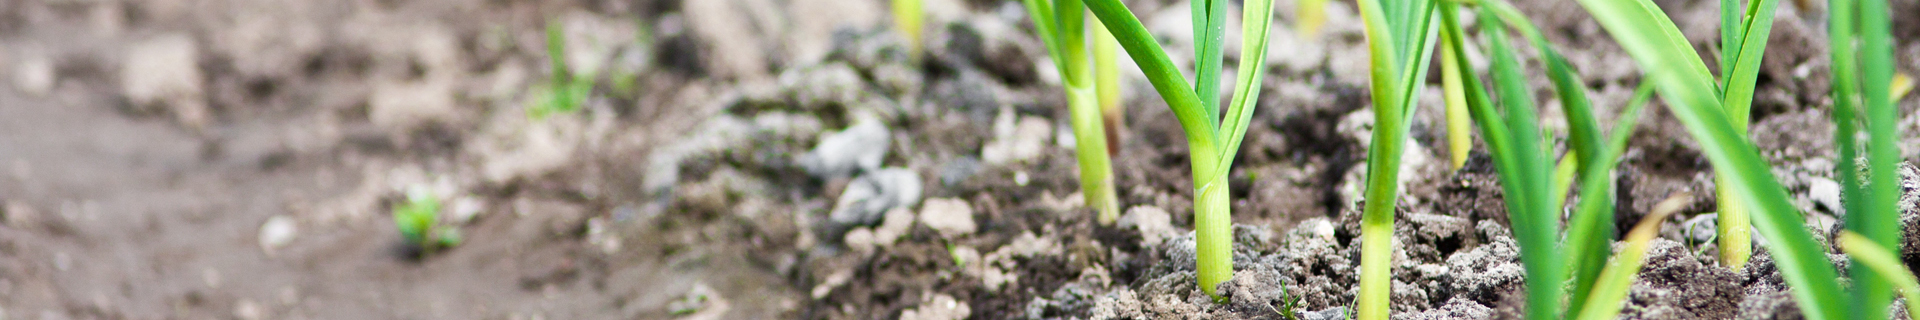 <p>Everything you need to know about growing garlic</p>